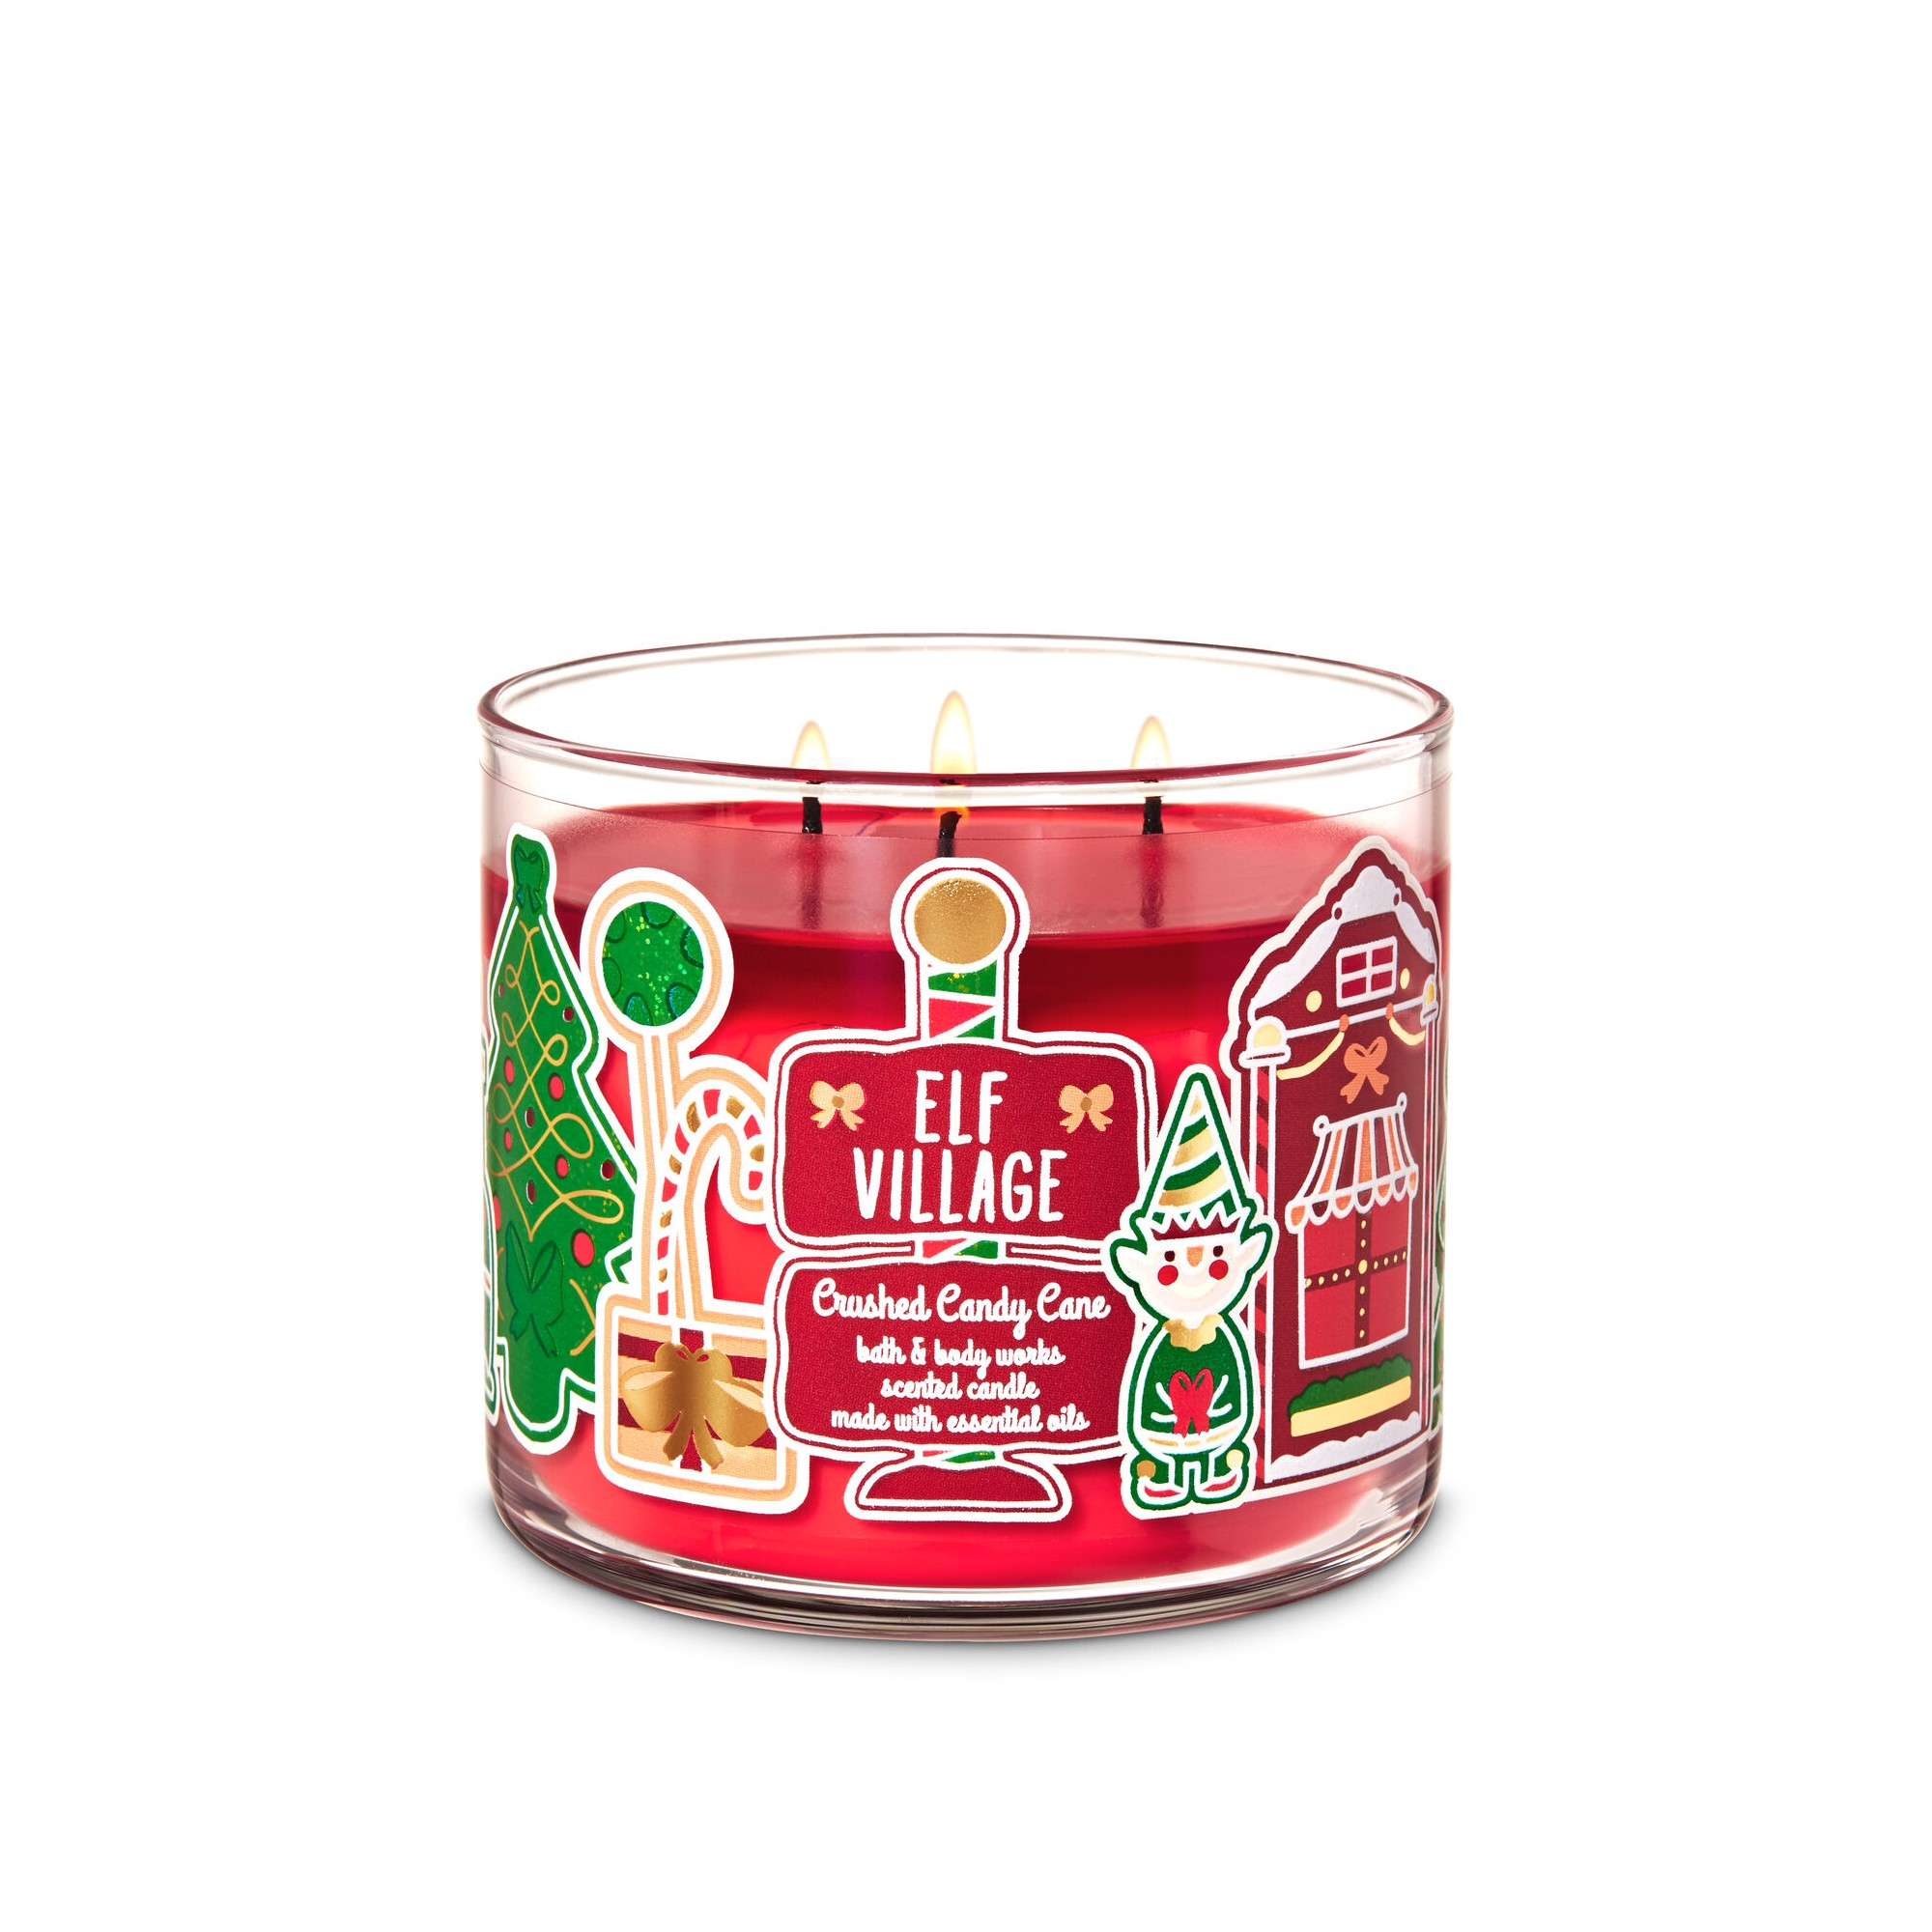 Bath & Body Works Elf Village Crushed Candy Cane 3 Wick Scented Candle